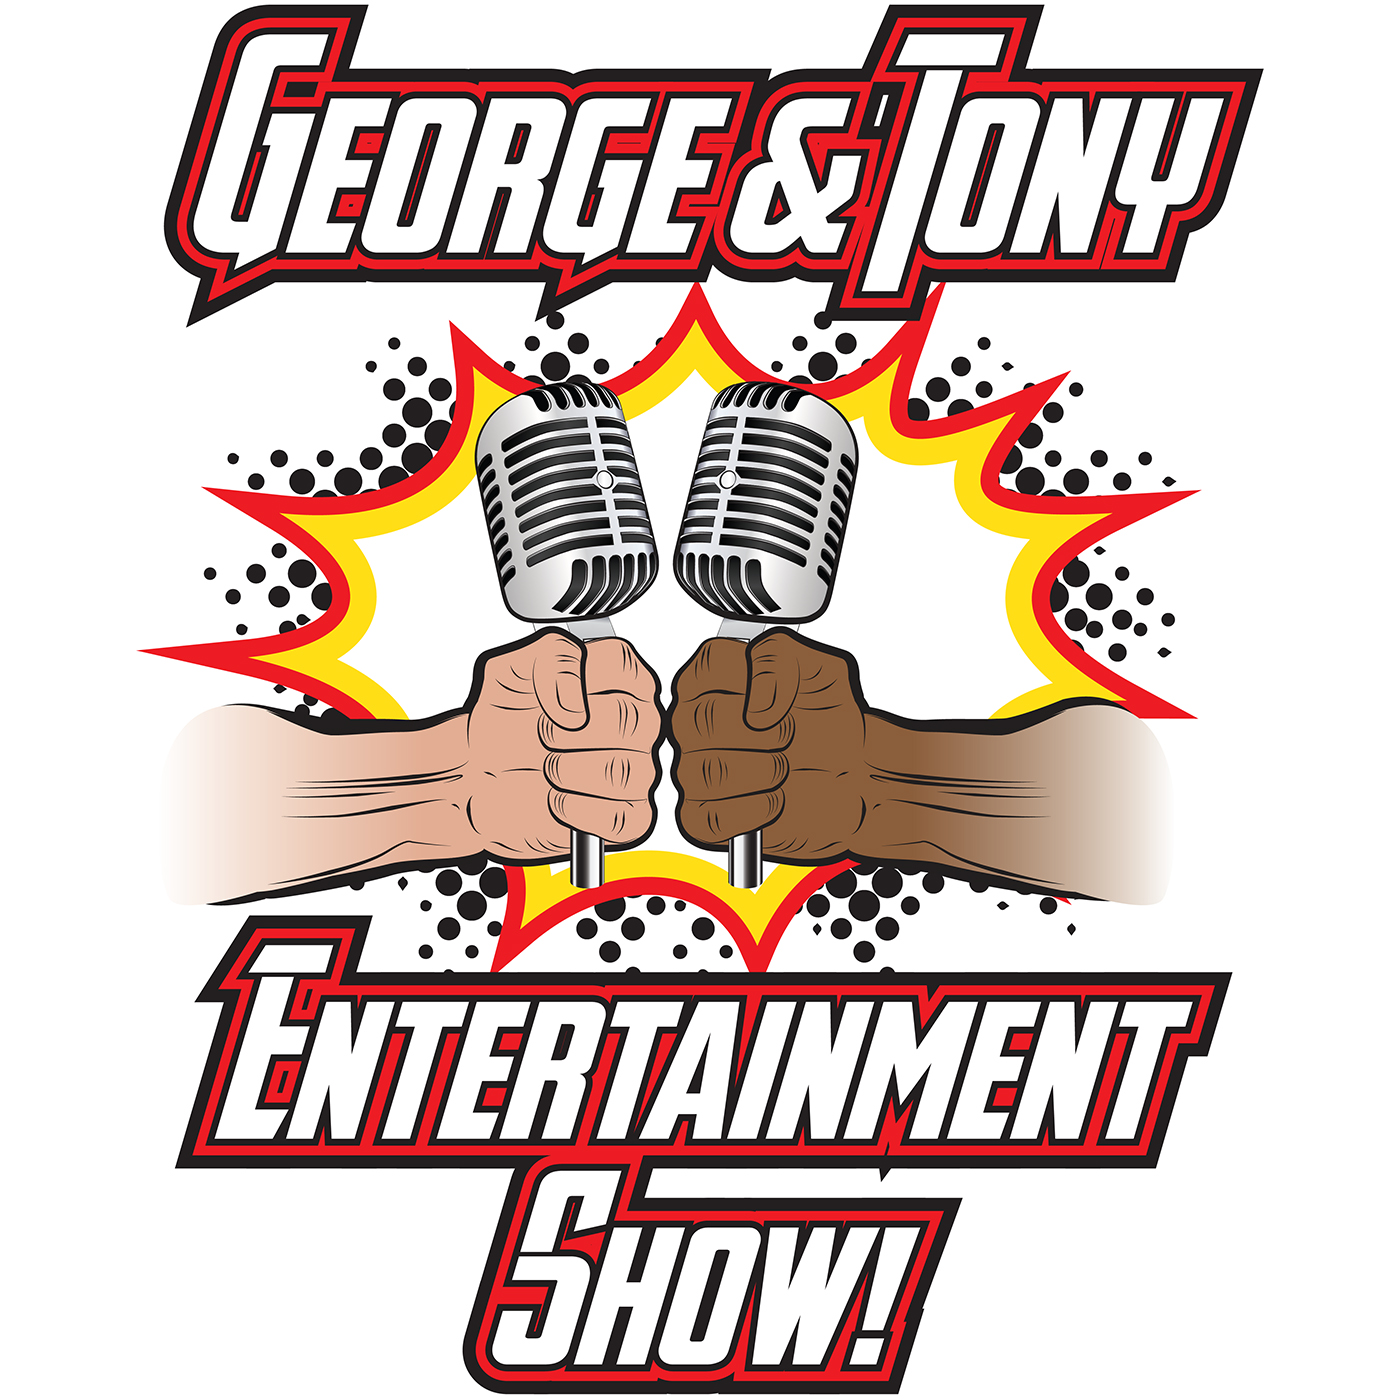 George and Tony Entertainment Show #120